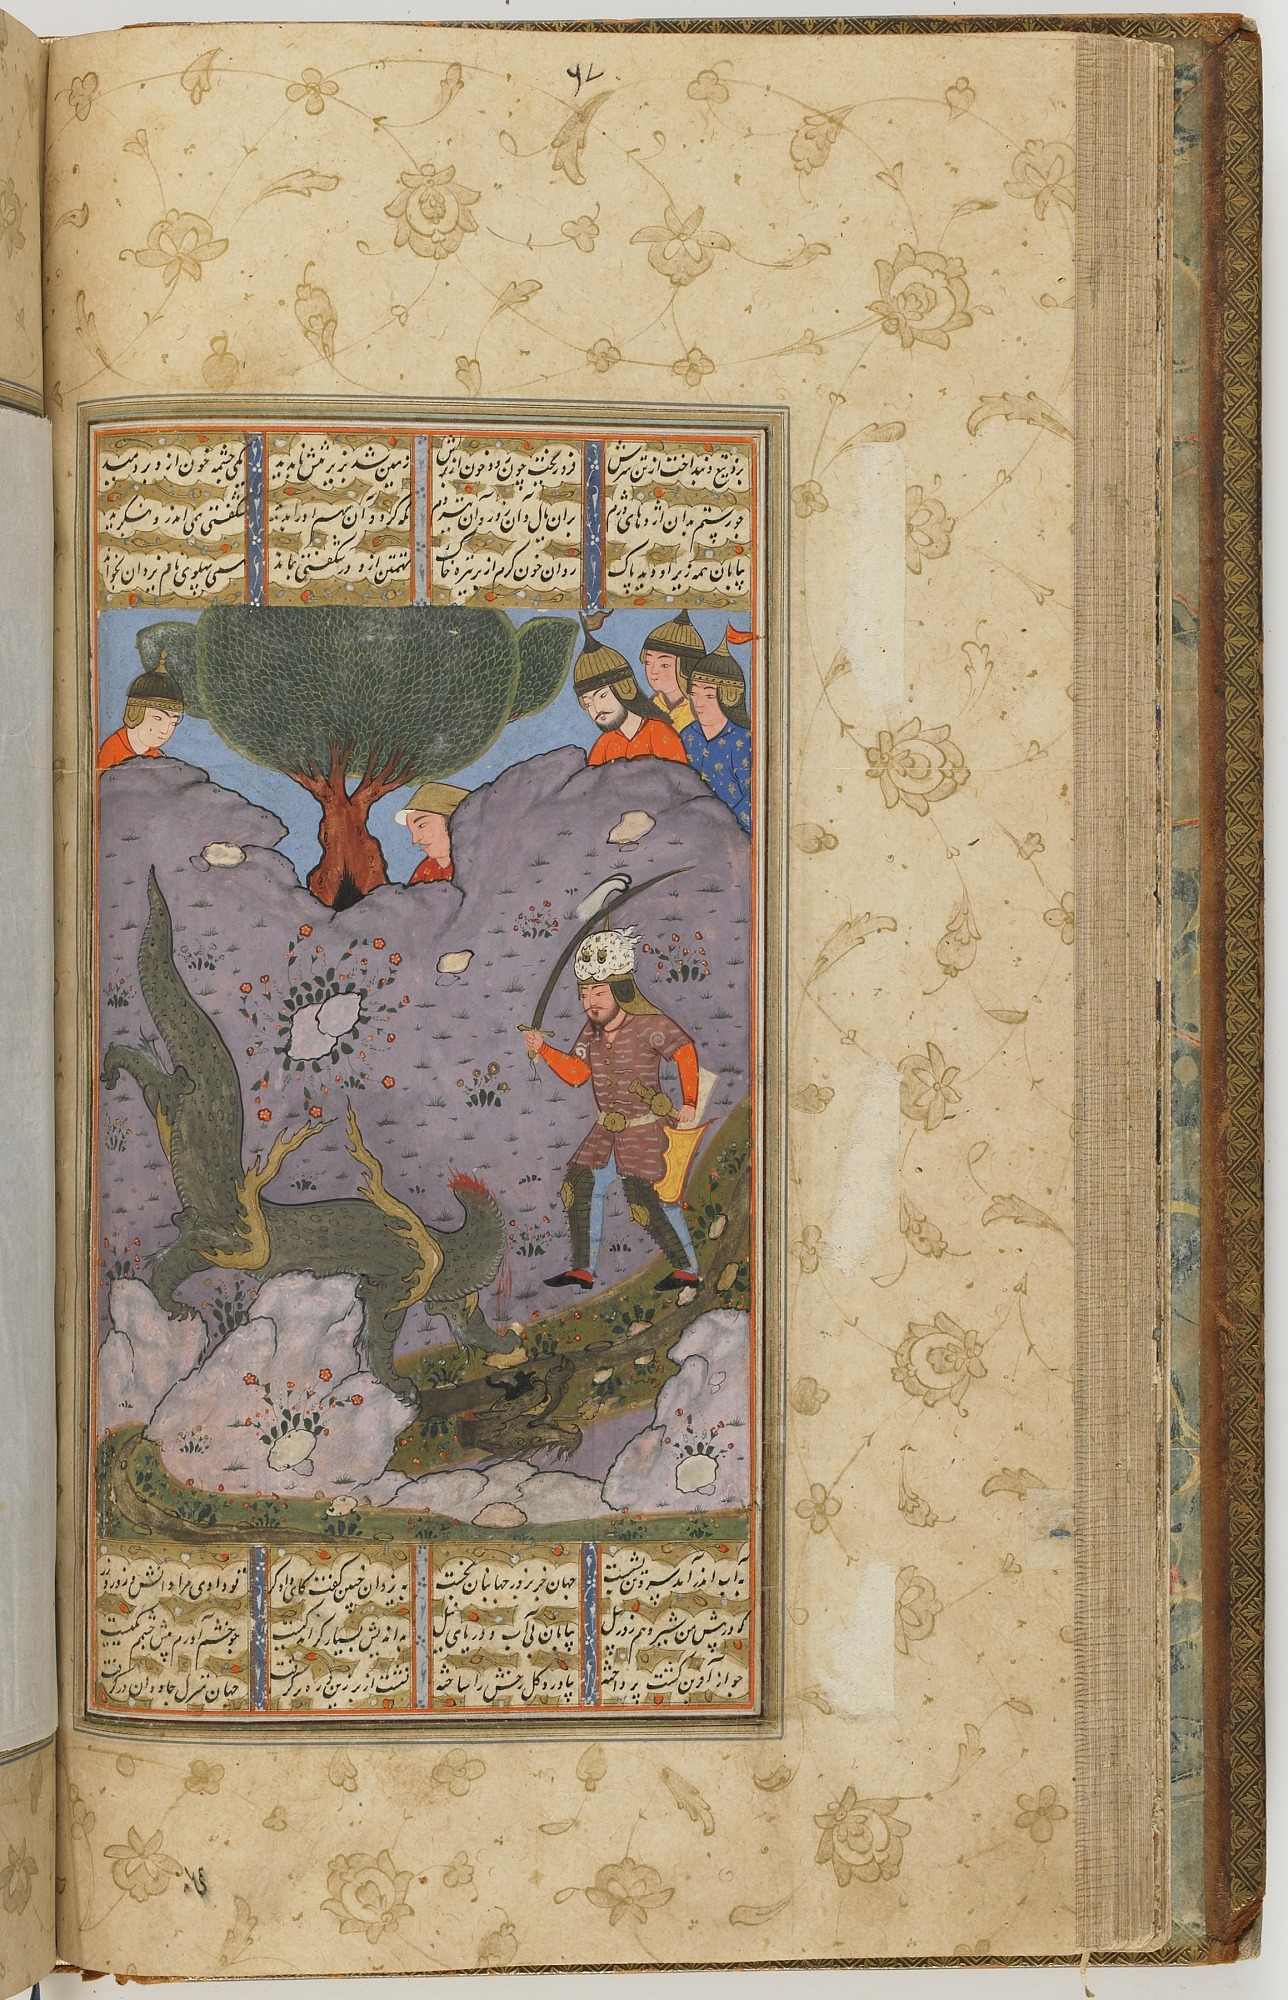 folio 67 verso: The Shahnama (Book of kings) by Firdausi (d. 1020)